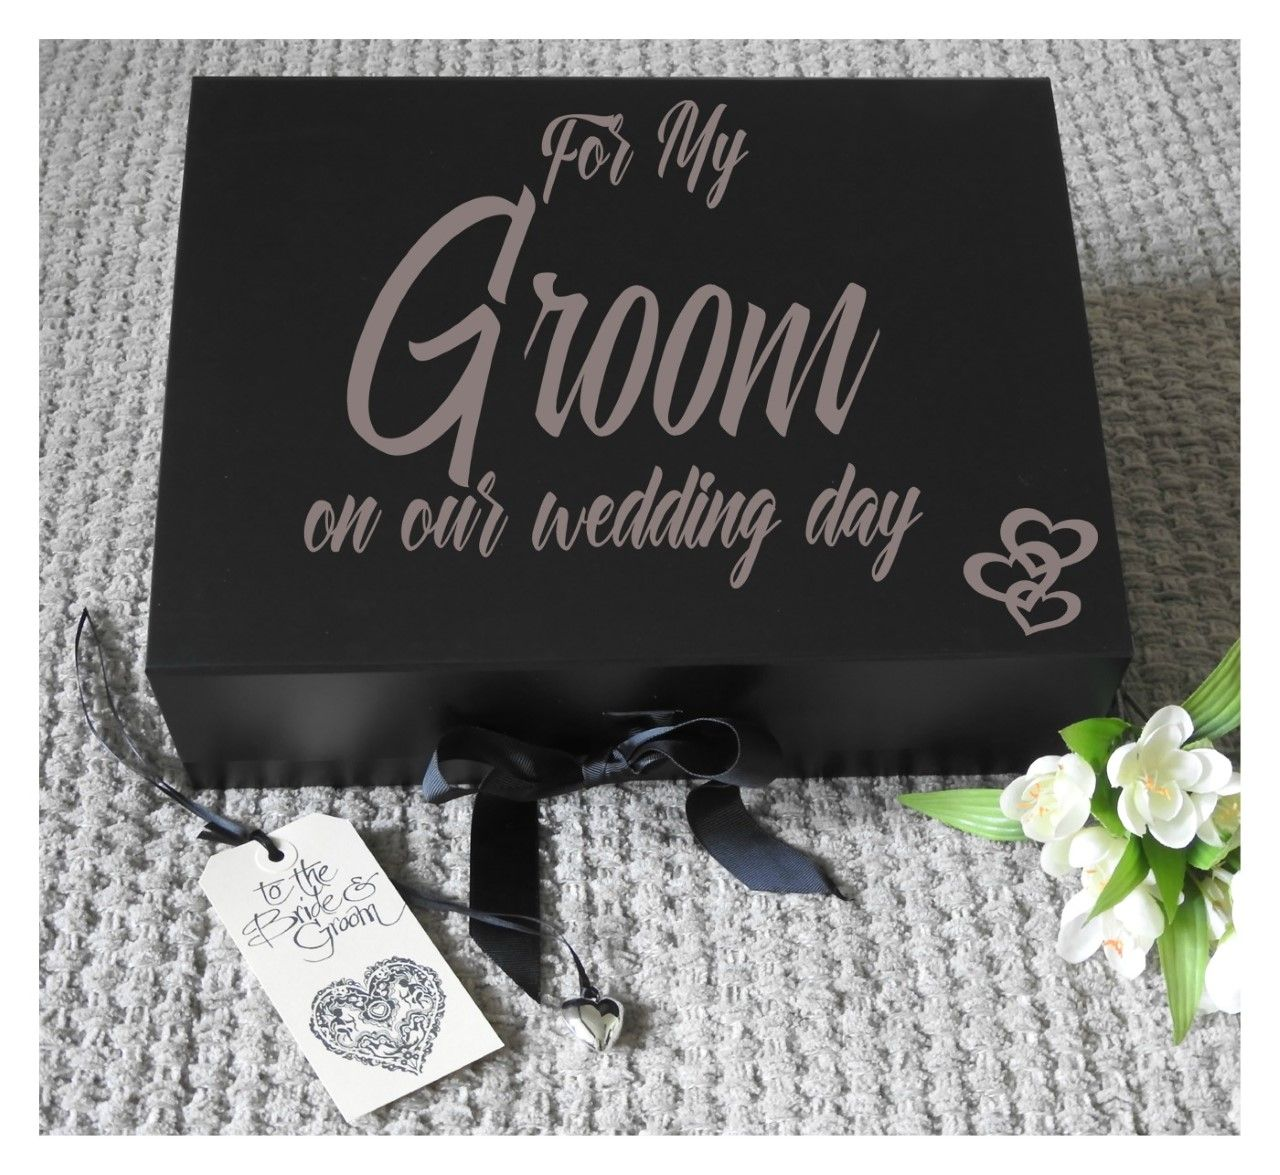 Groom gift box wedding day gifts wedding gifts for